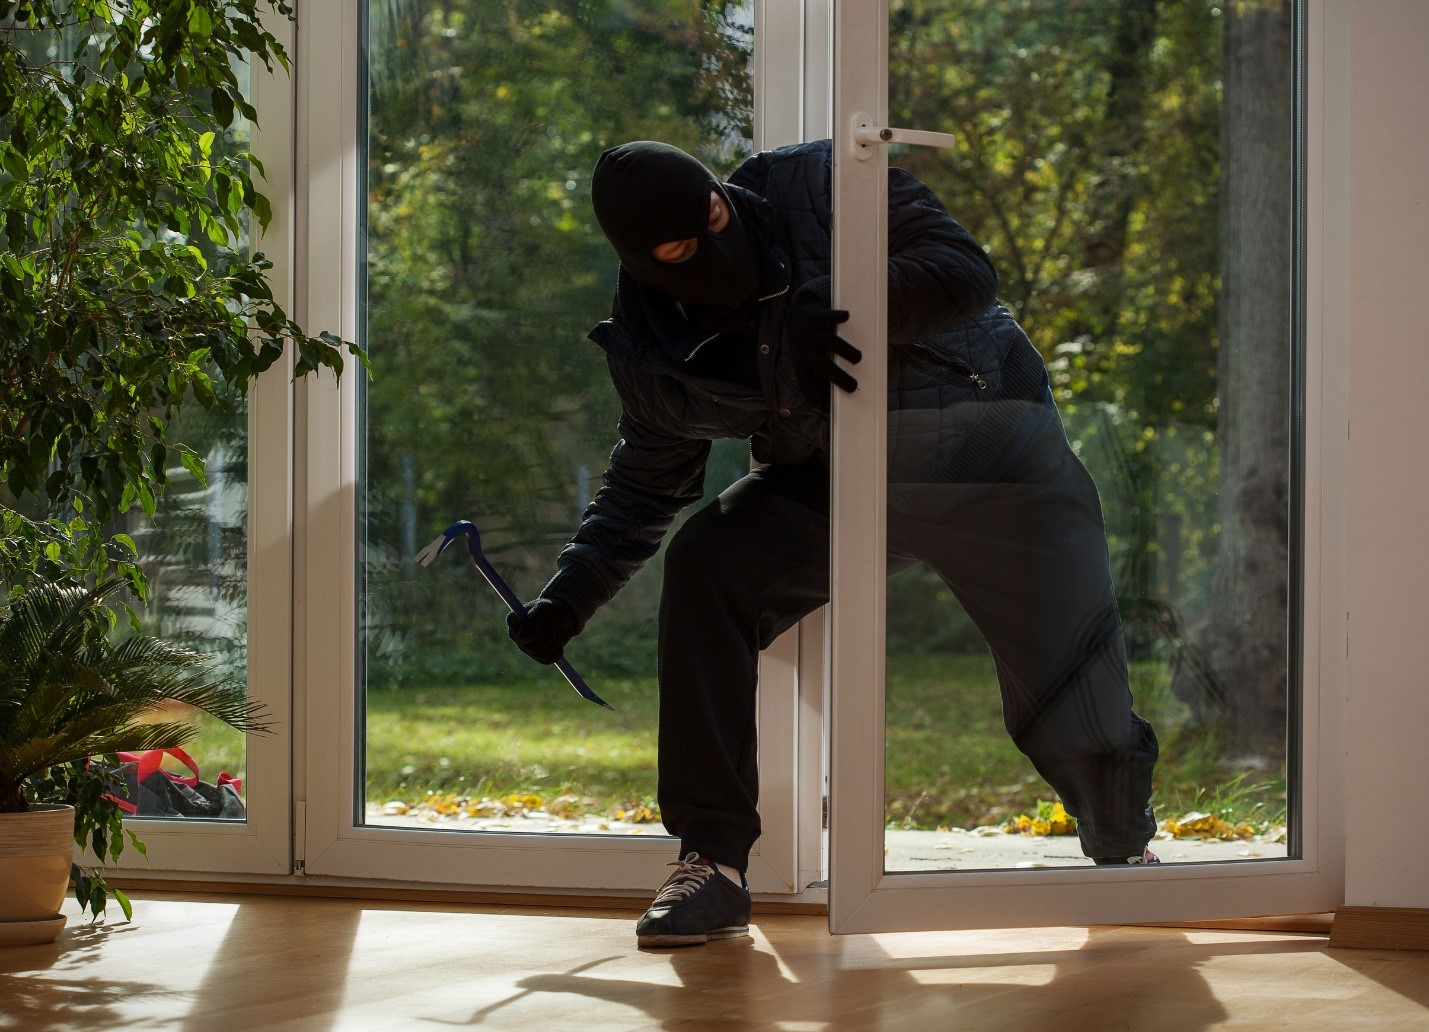 6 Different Types of Burglars You Should Be Aware Of